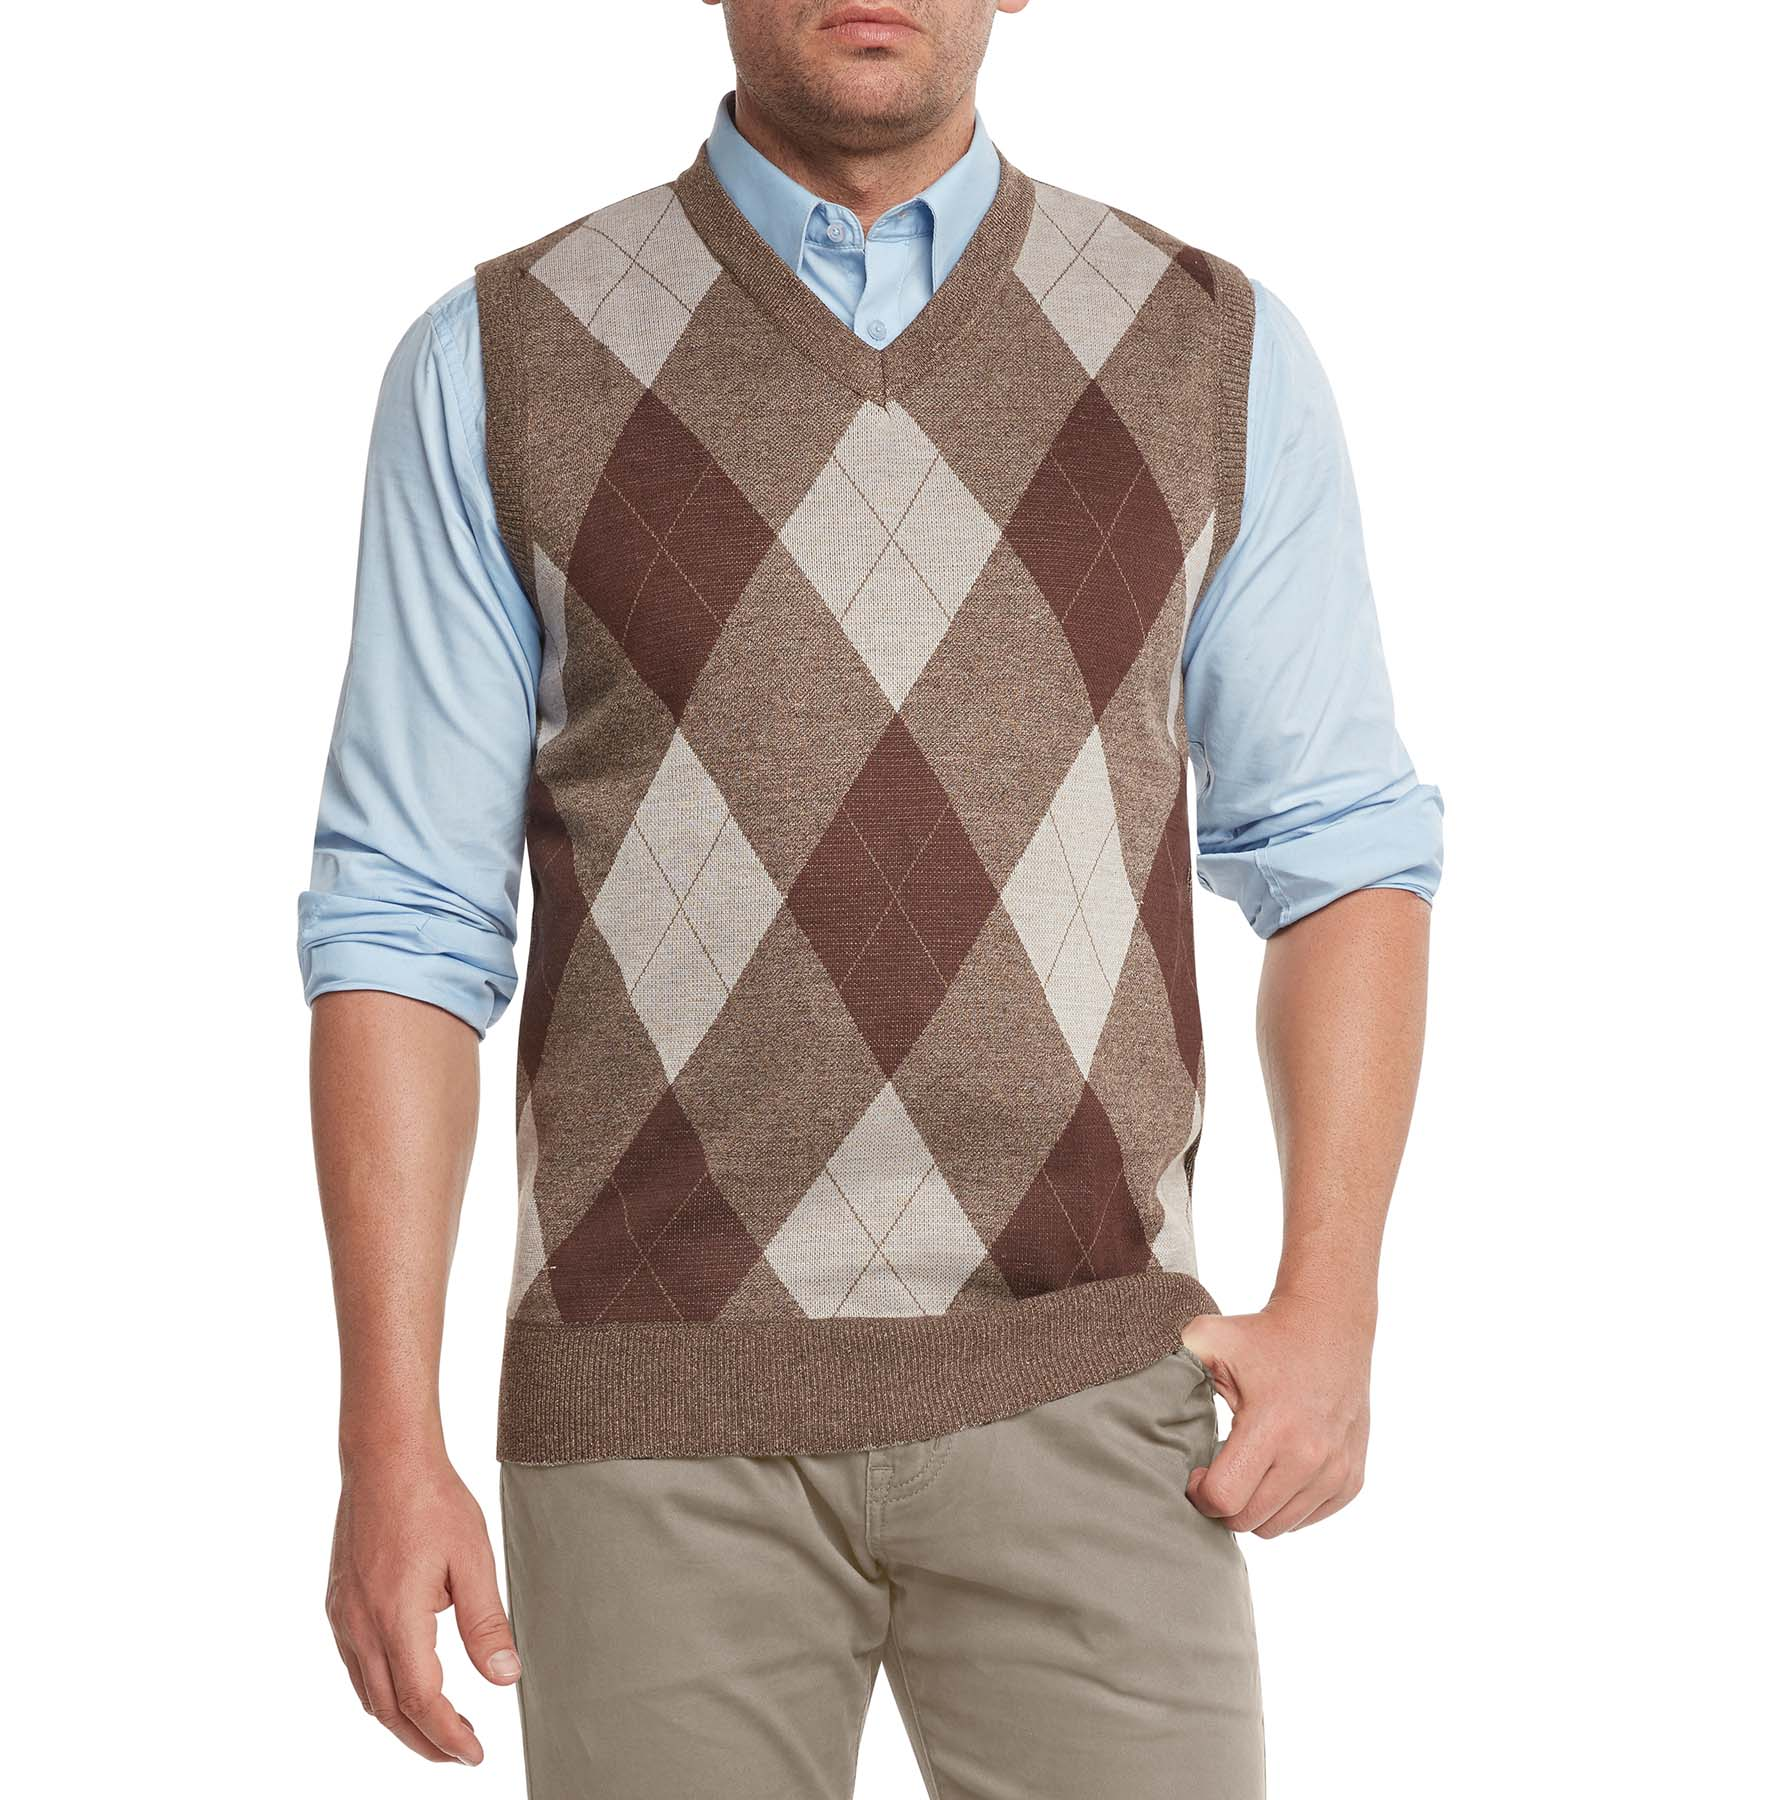 True Rock Mens Athletic Cut Argyle V Neck Sweater Vest Ebay